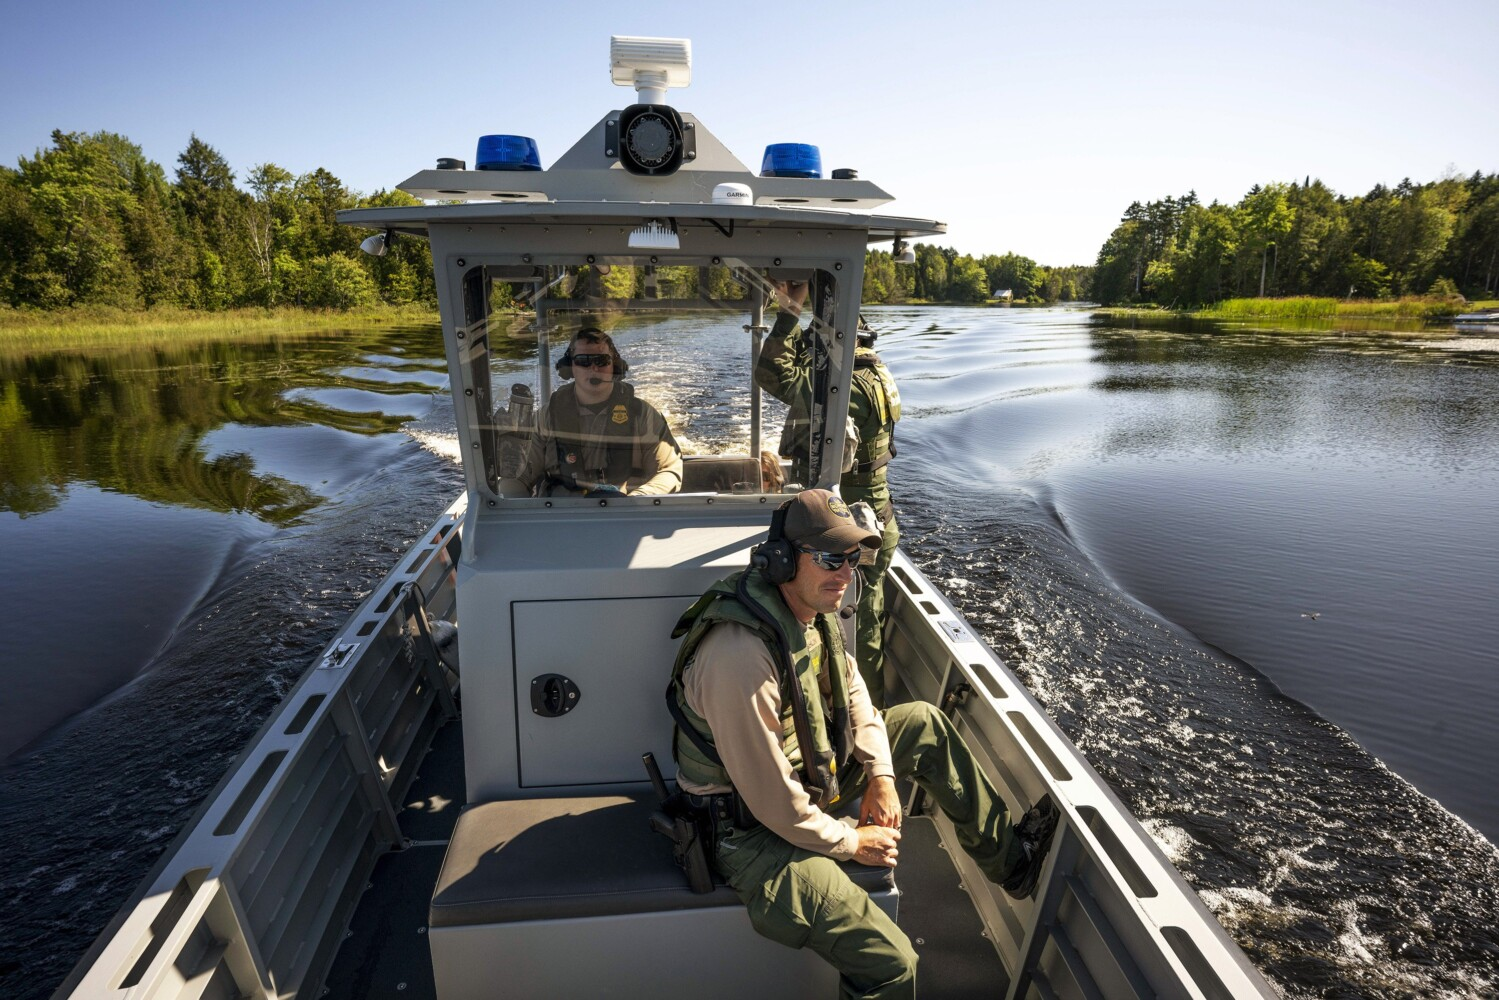 New border patrol chief explains why he uses #BuildTheWall and what his plans are for Maine | Lewiston Sun Journal